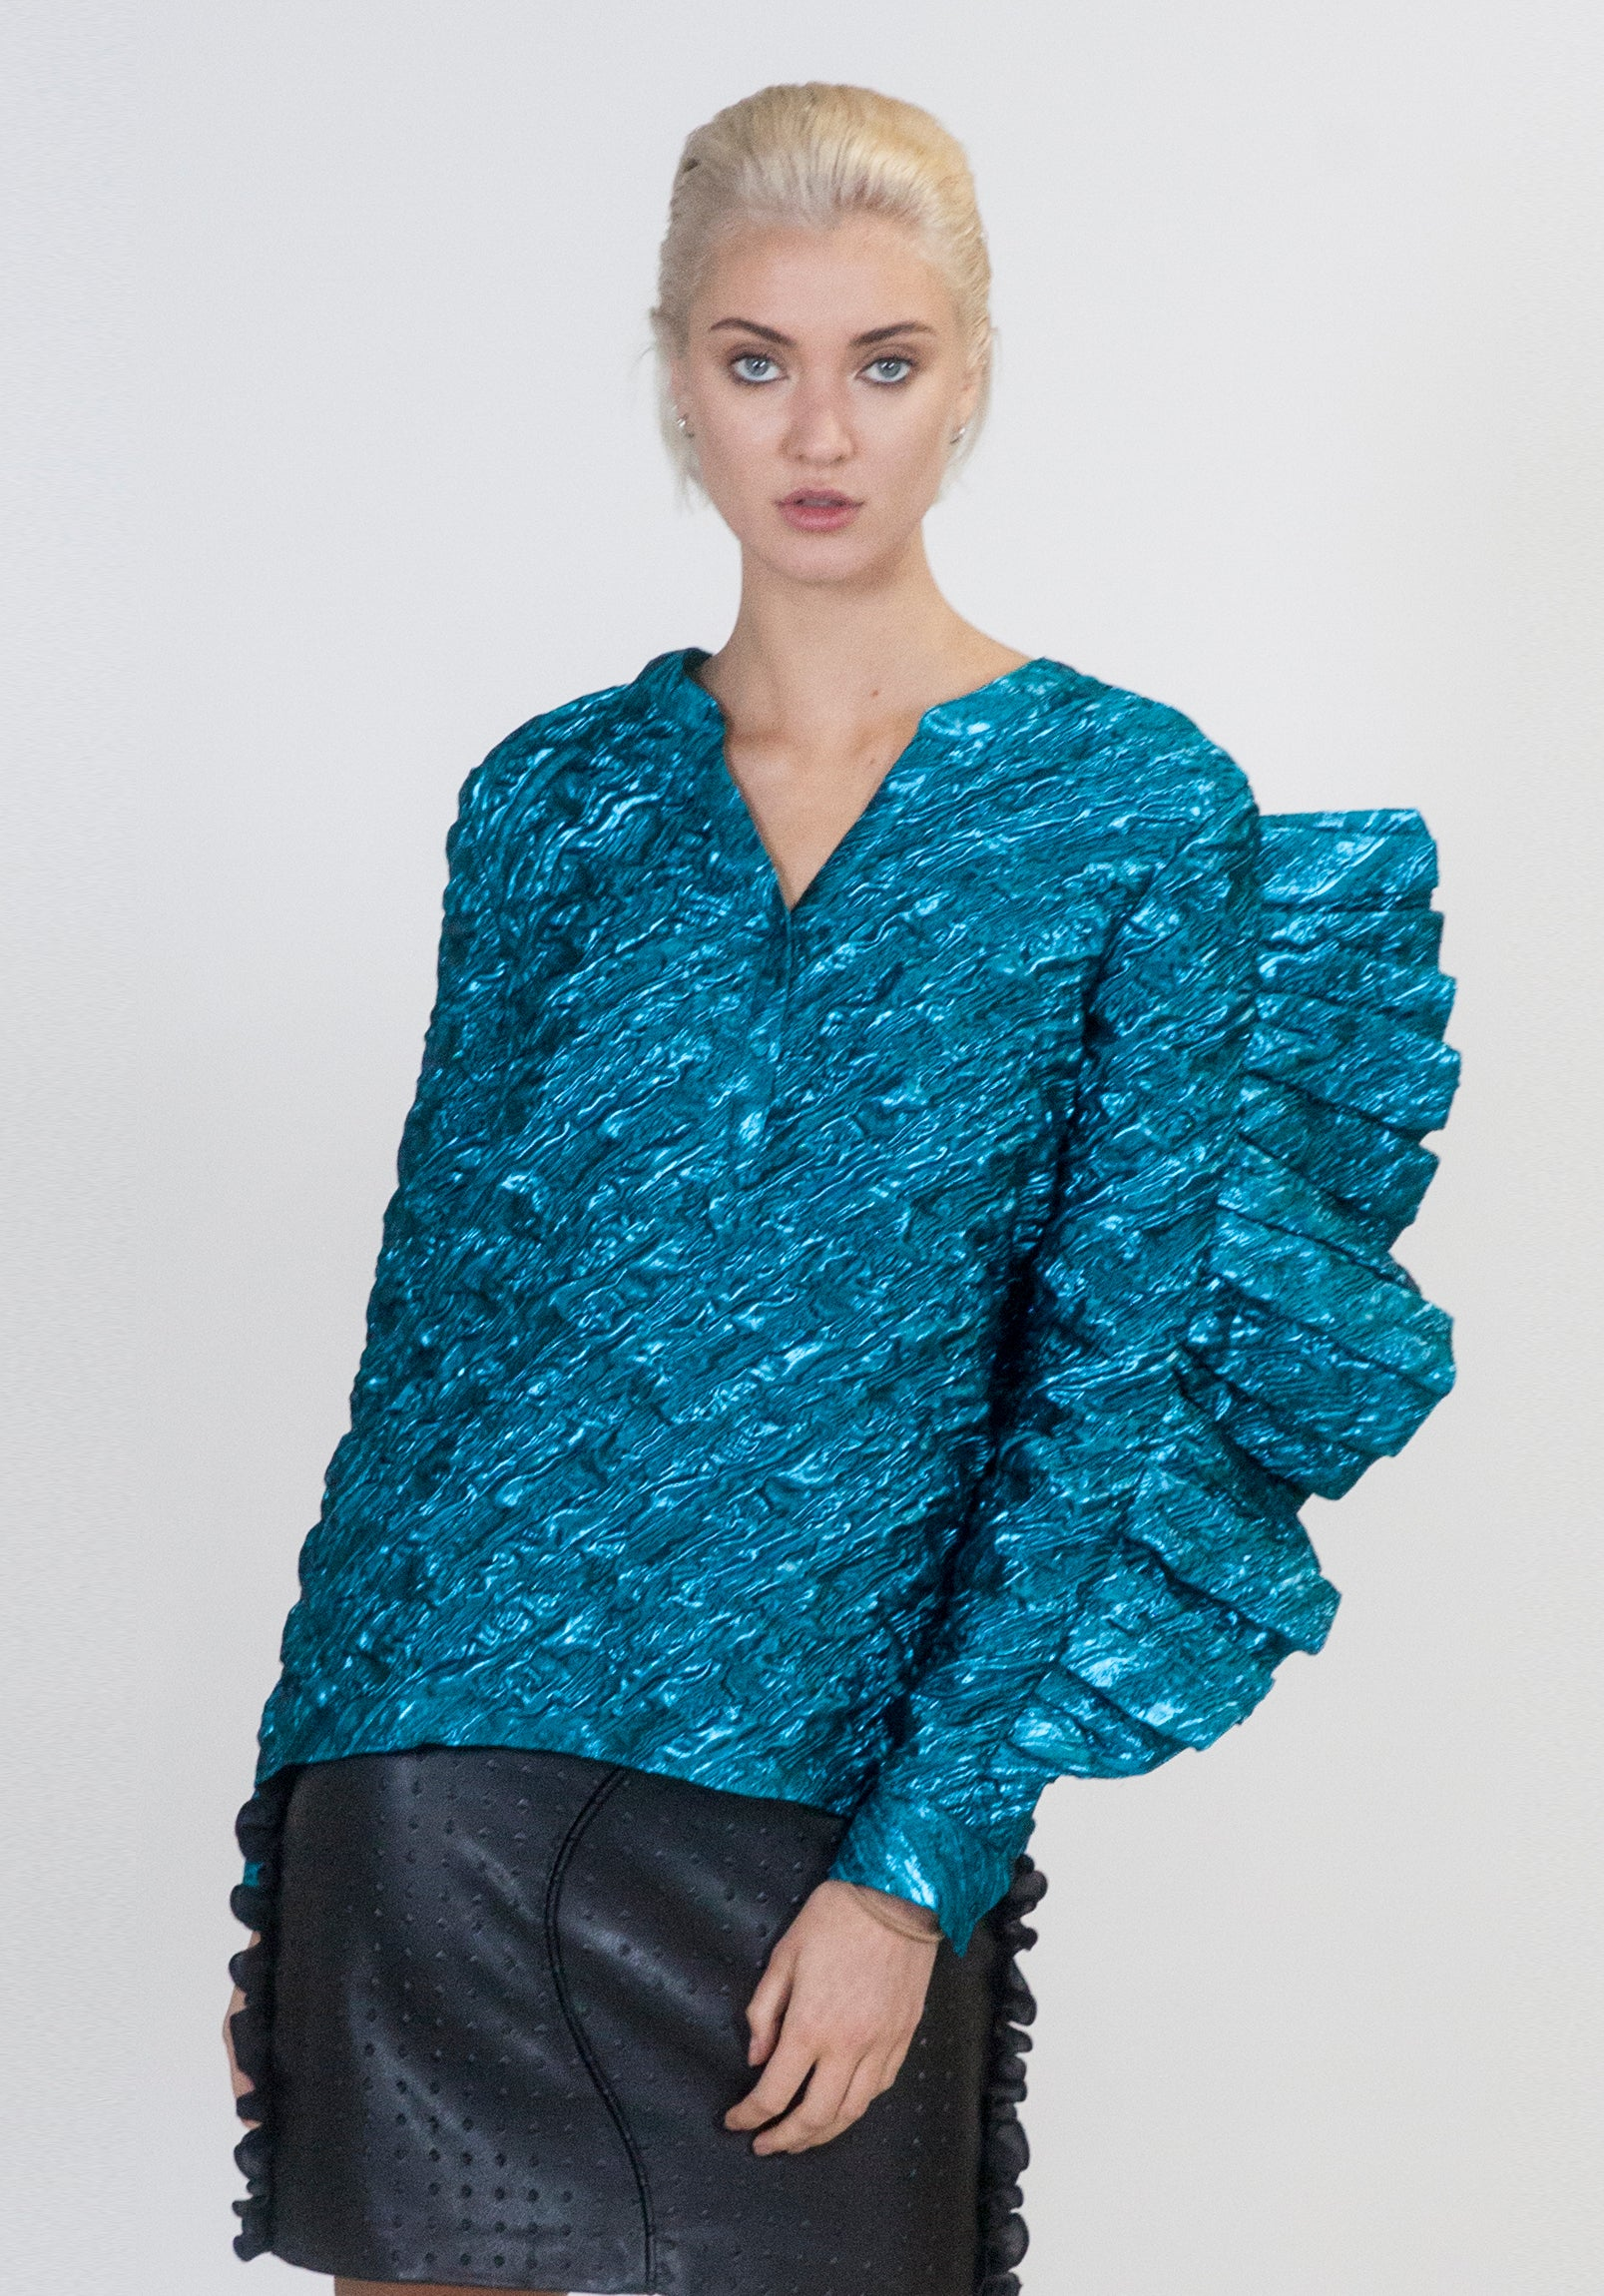 Electric Blue Oversized Ruffle Top - Arianne Elmy